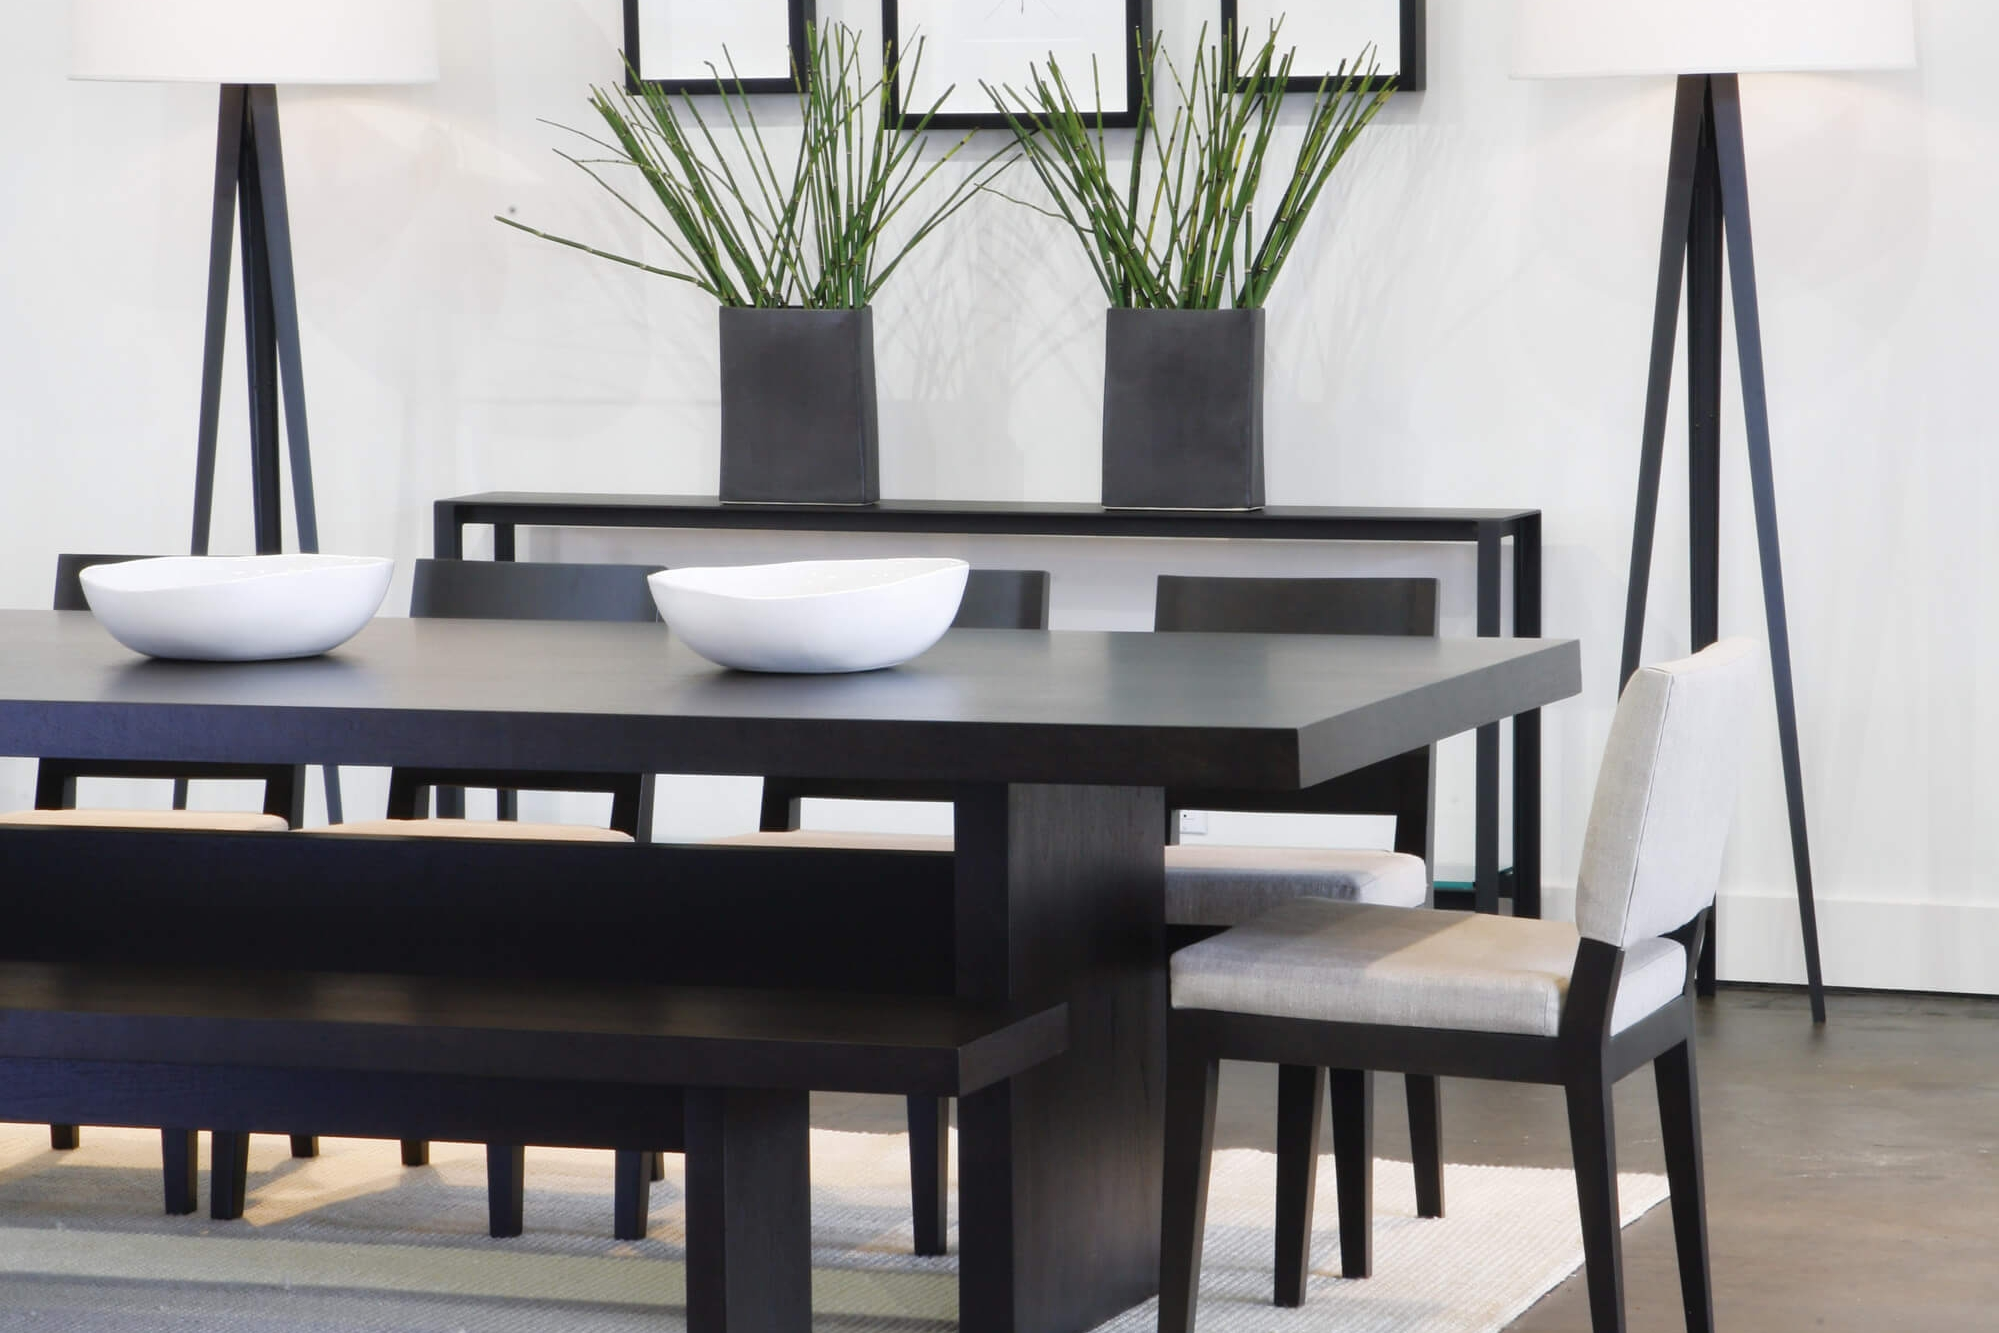 Home Stratosphere  Shown: Madison Dining Table, Madison Chair, Bowery Console